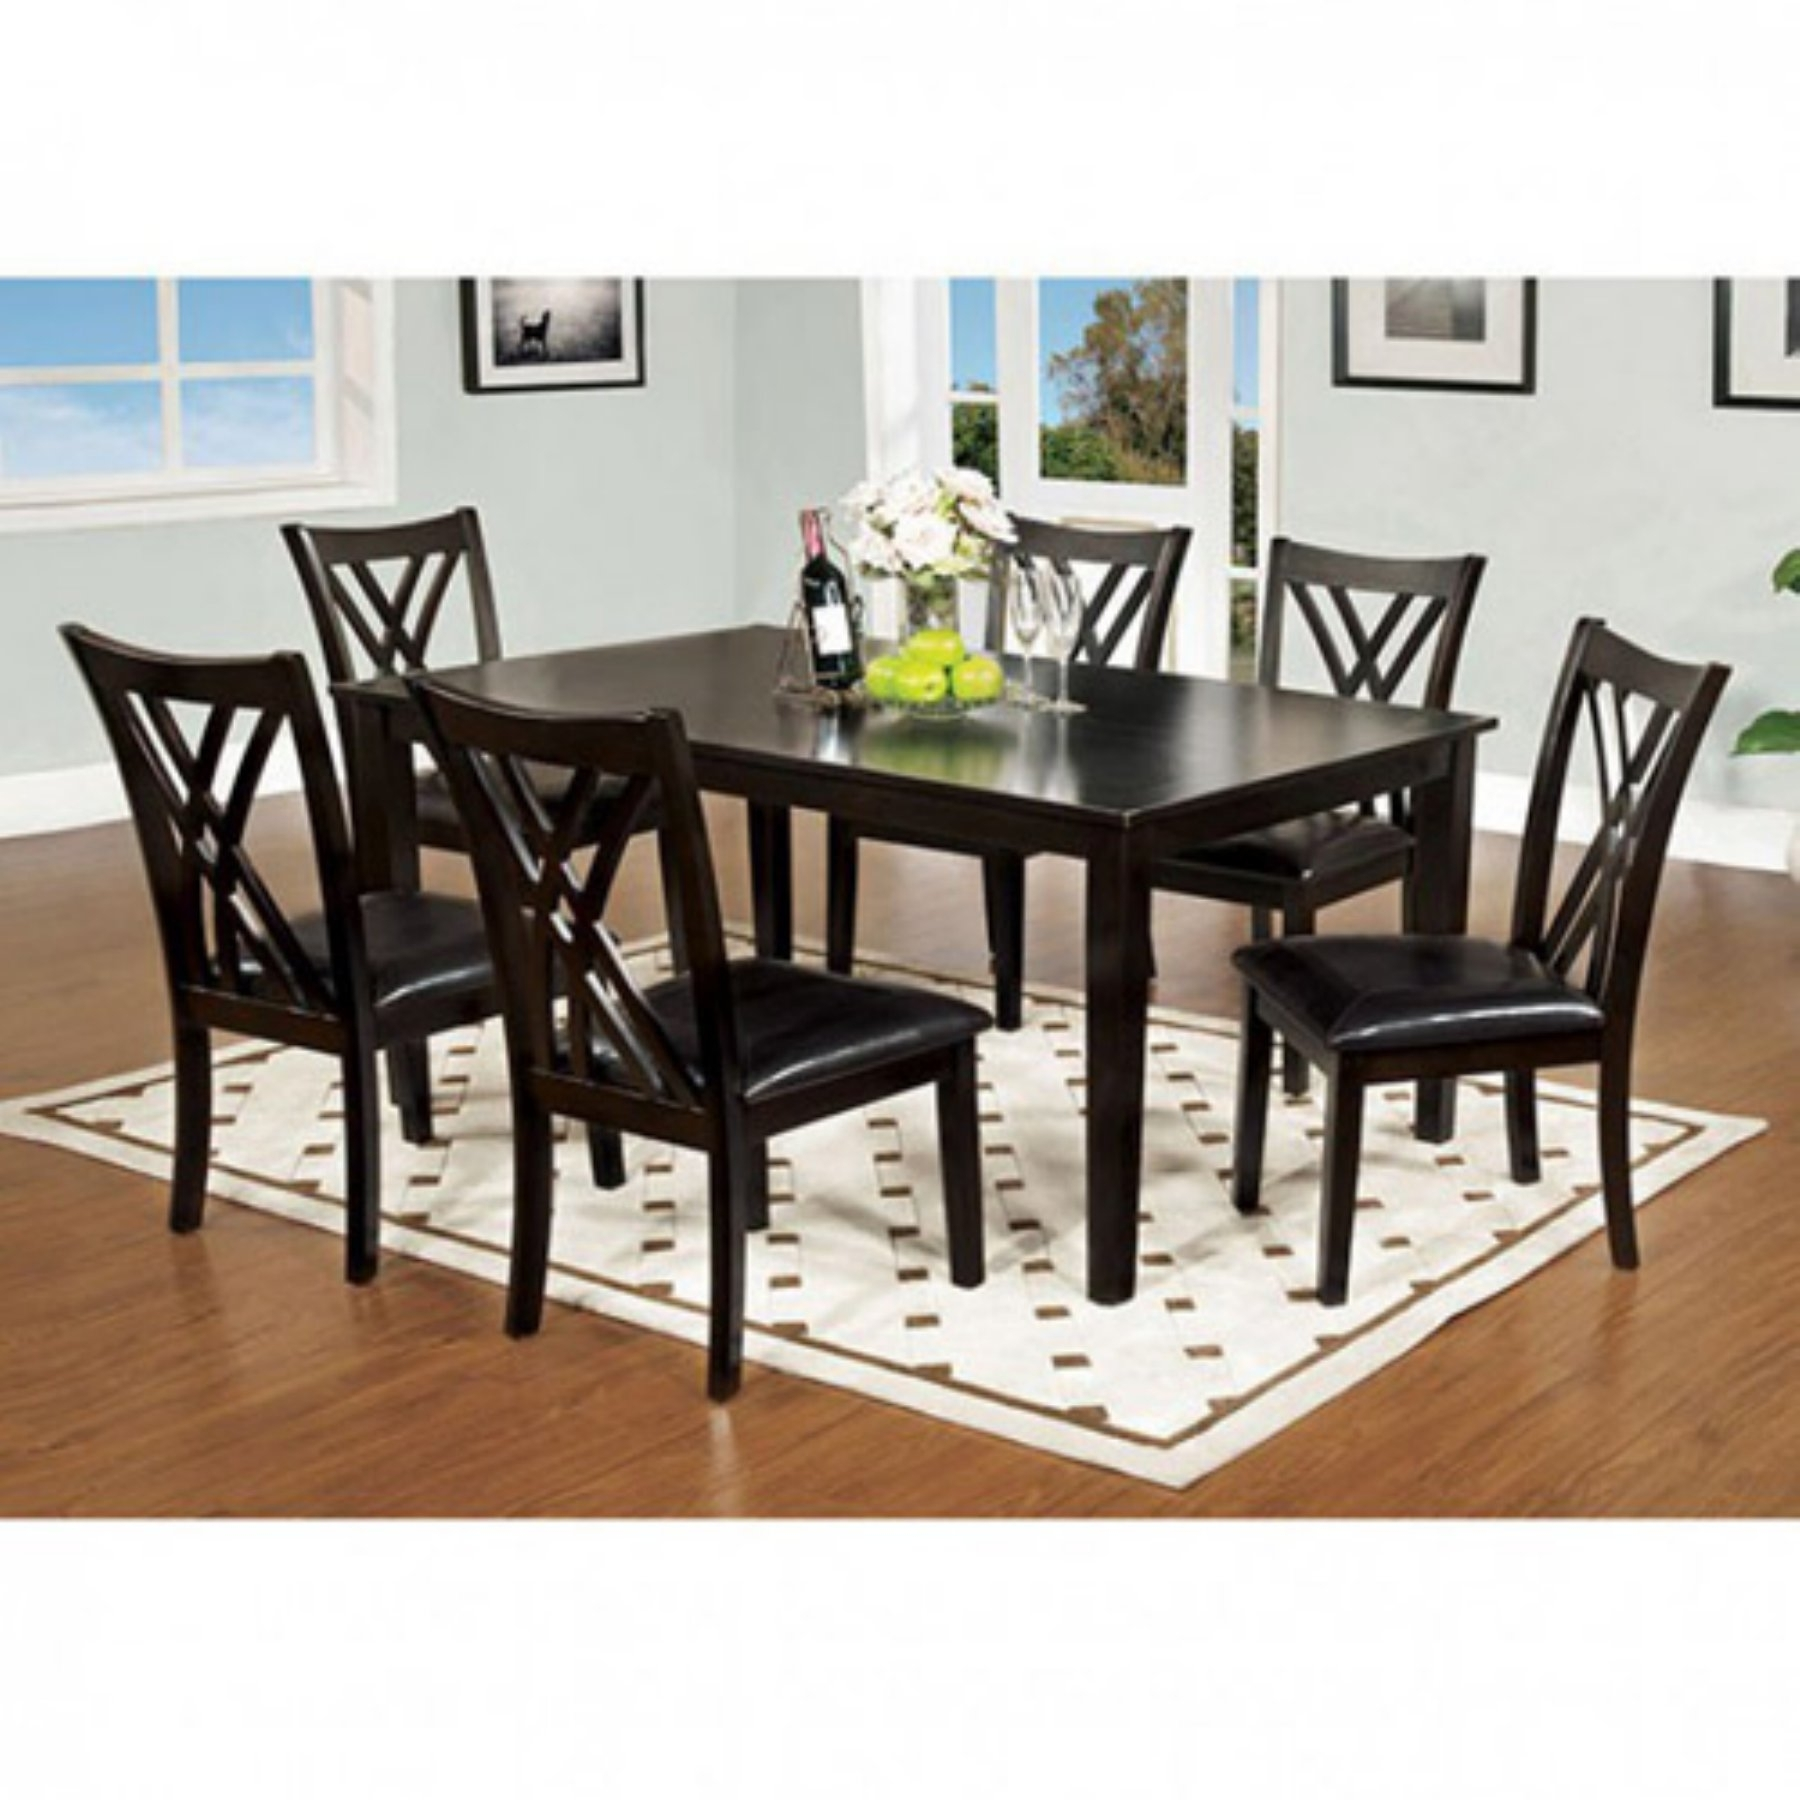 Benzara Springhill Enticing 7 Piece Rectangular Dining Table Set In Regarding Recent Craftsman 7 Piece Rectangular Extension Dining Sets With Arm & Uph Side Chairs (Image 3 of 20)